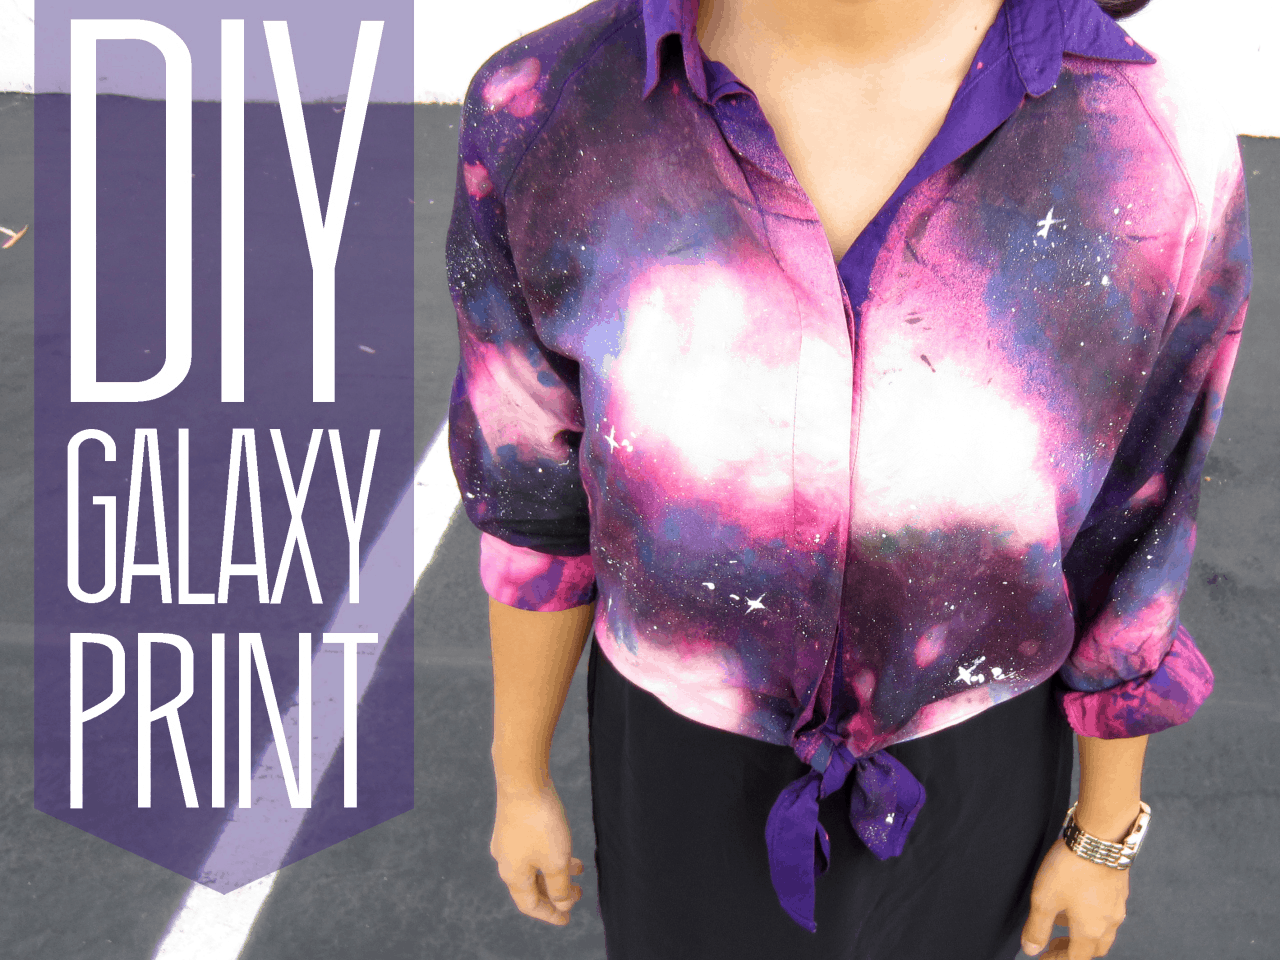 Diy galaxy print shirt